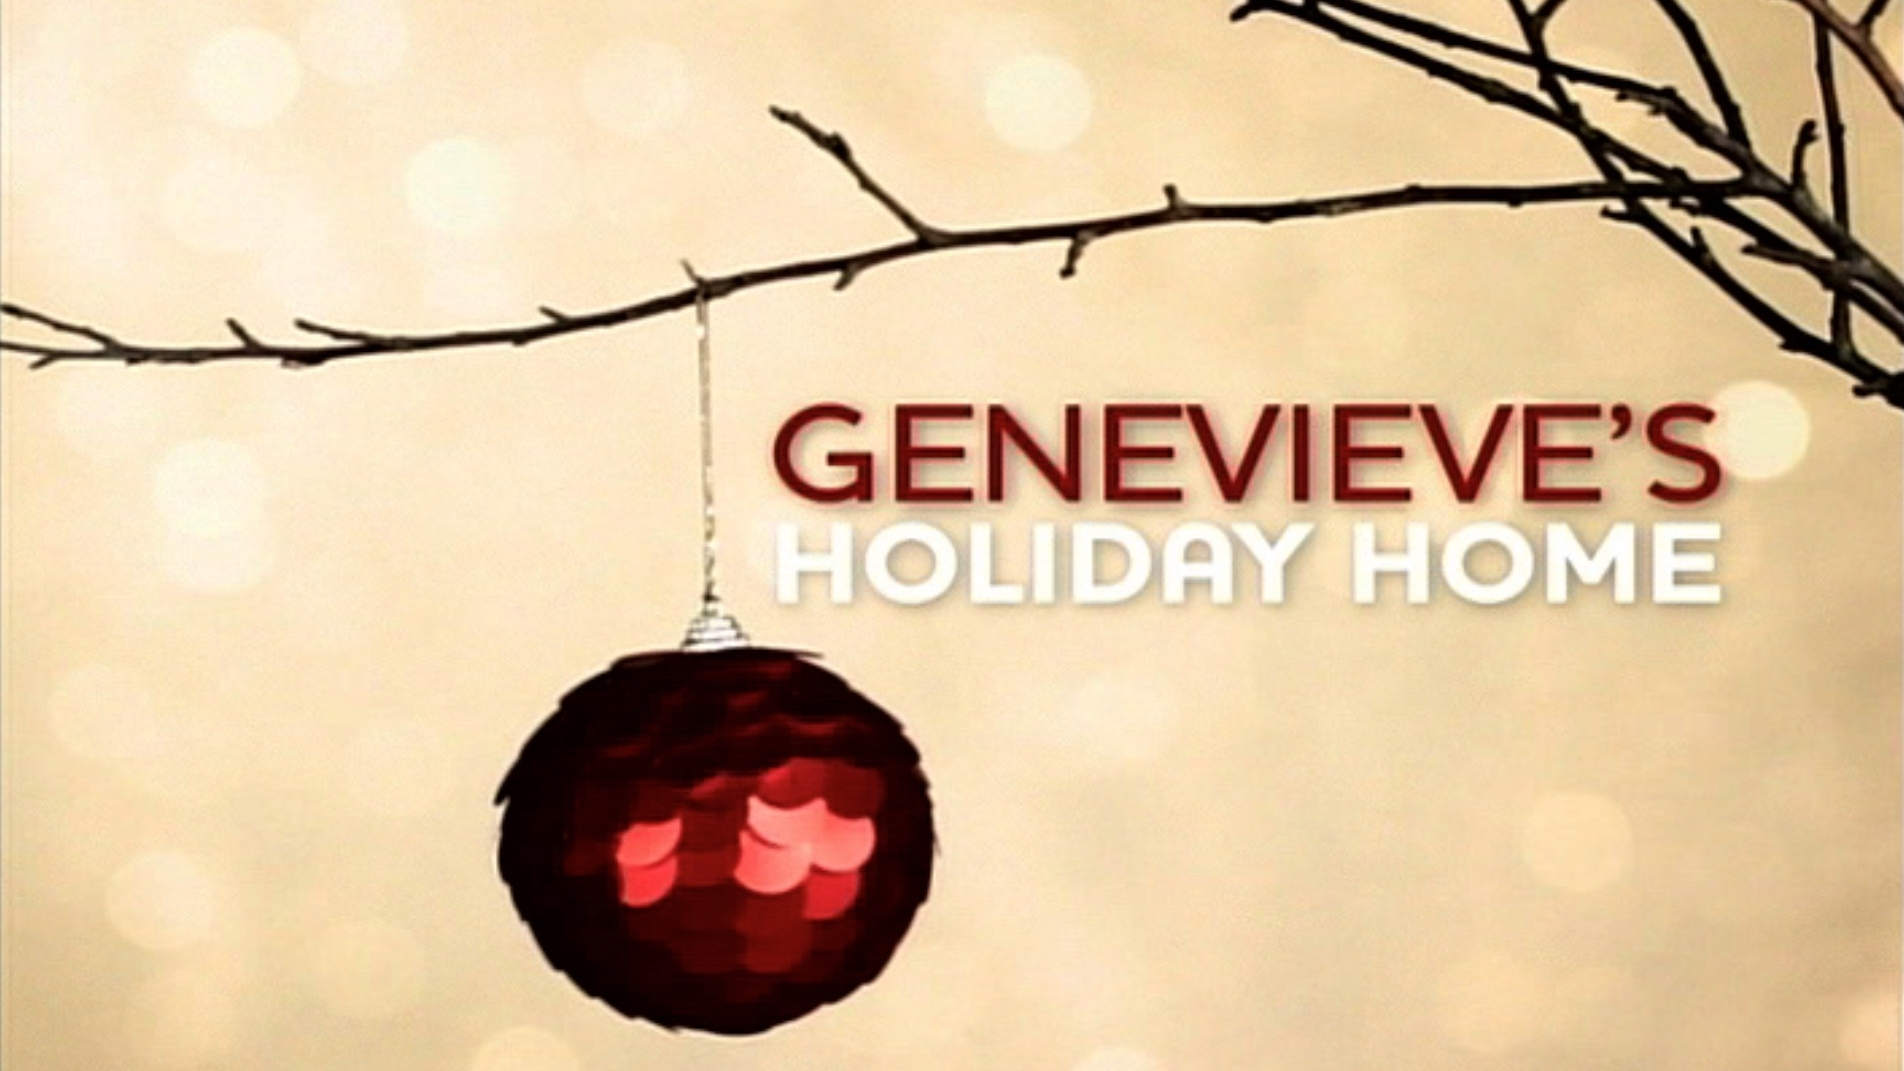 Genevieve's Holiday Home - HGTV